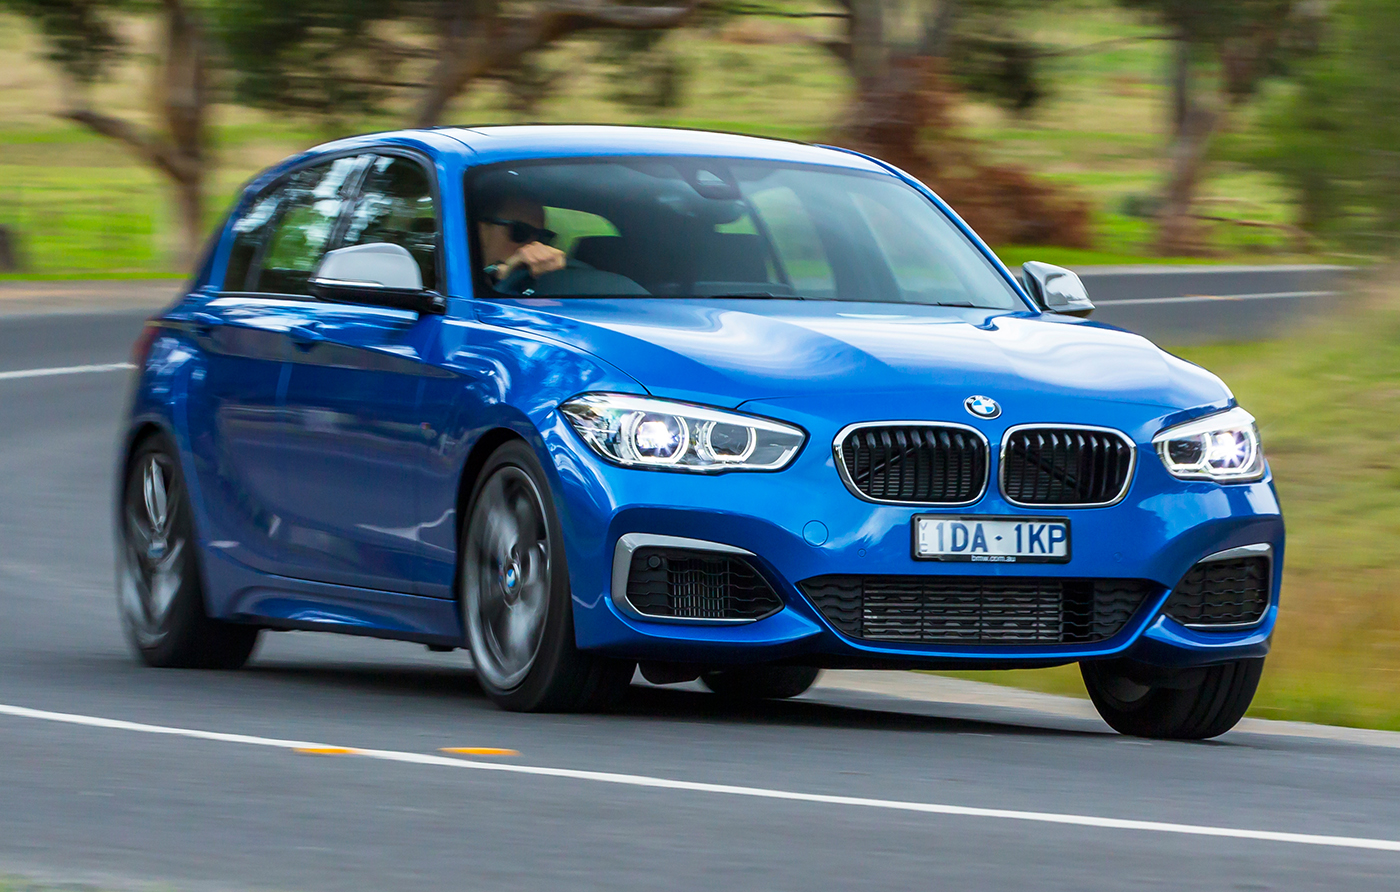 New BMW 1 Series: 2015 Price And Features For Revised Hatch Range